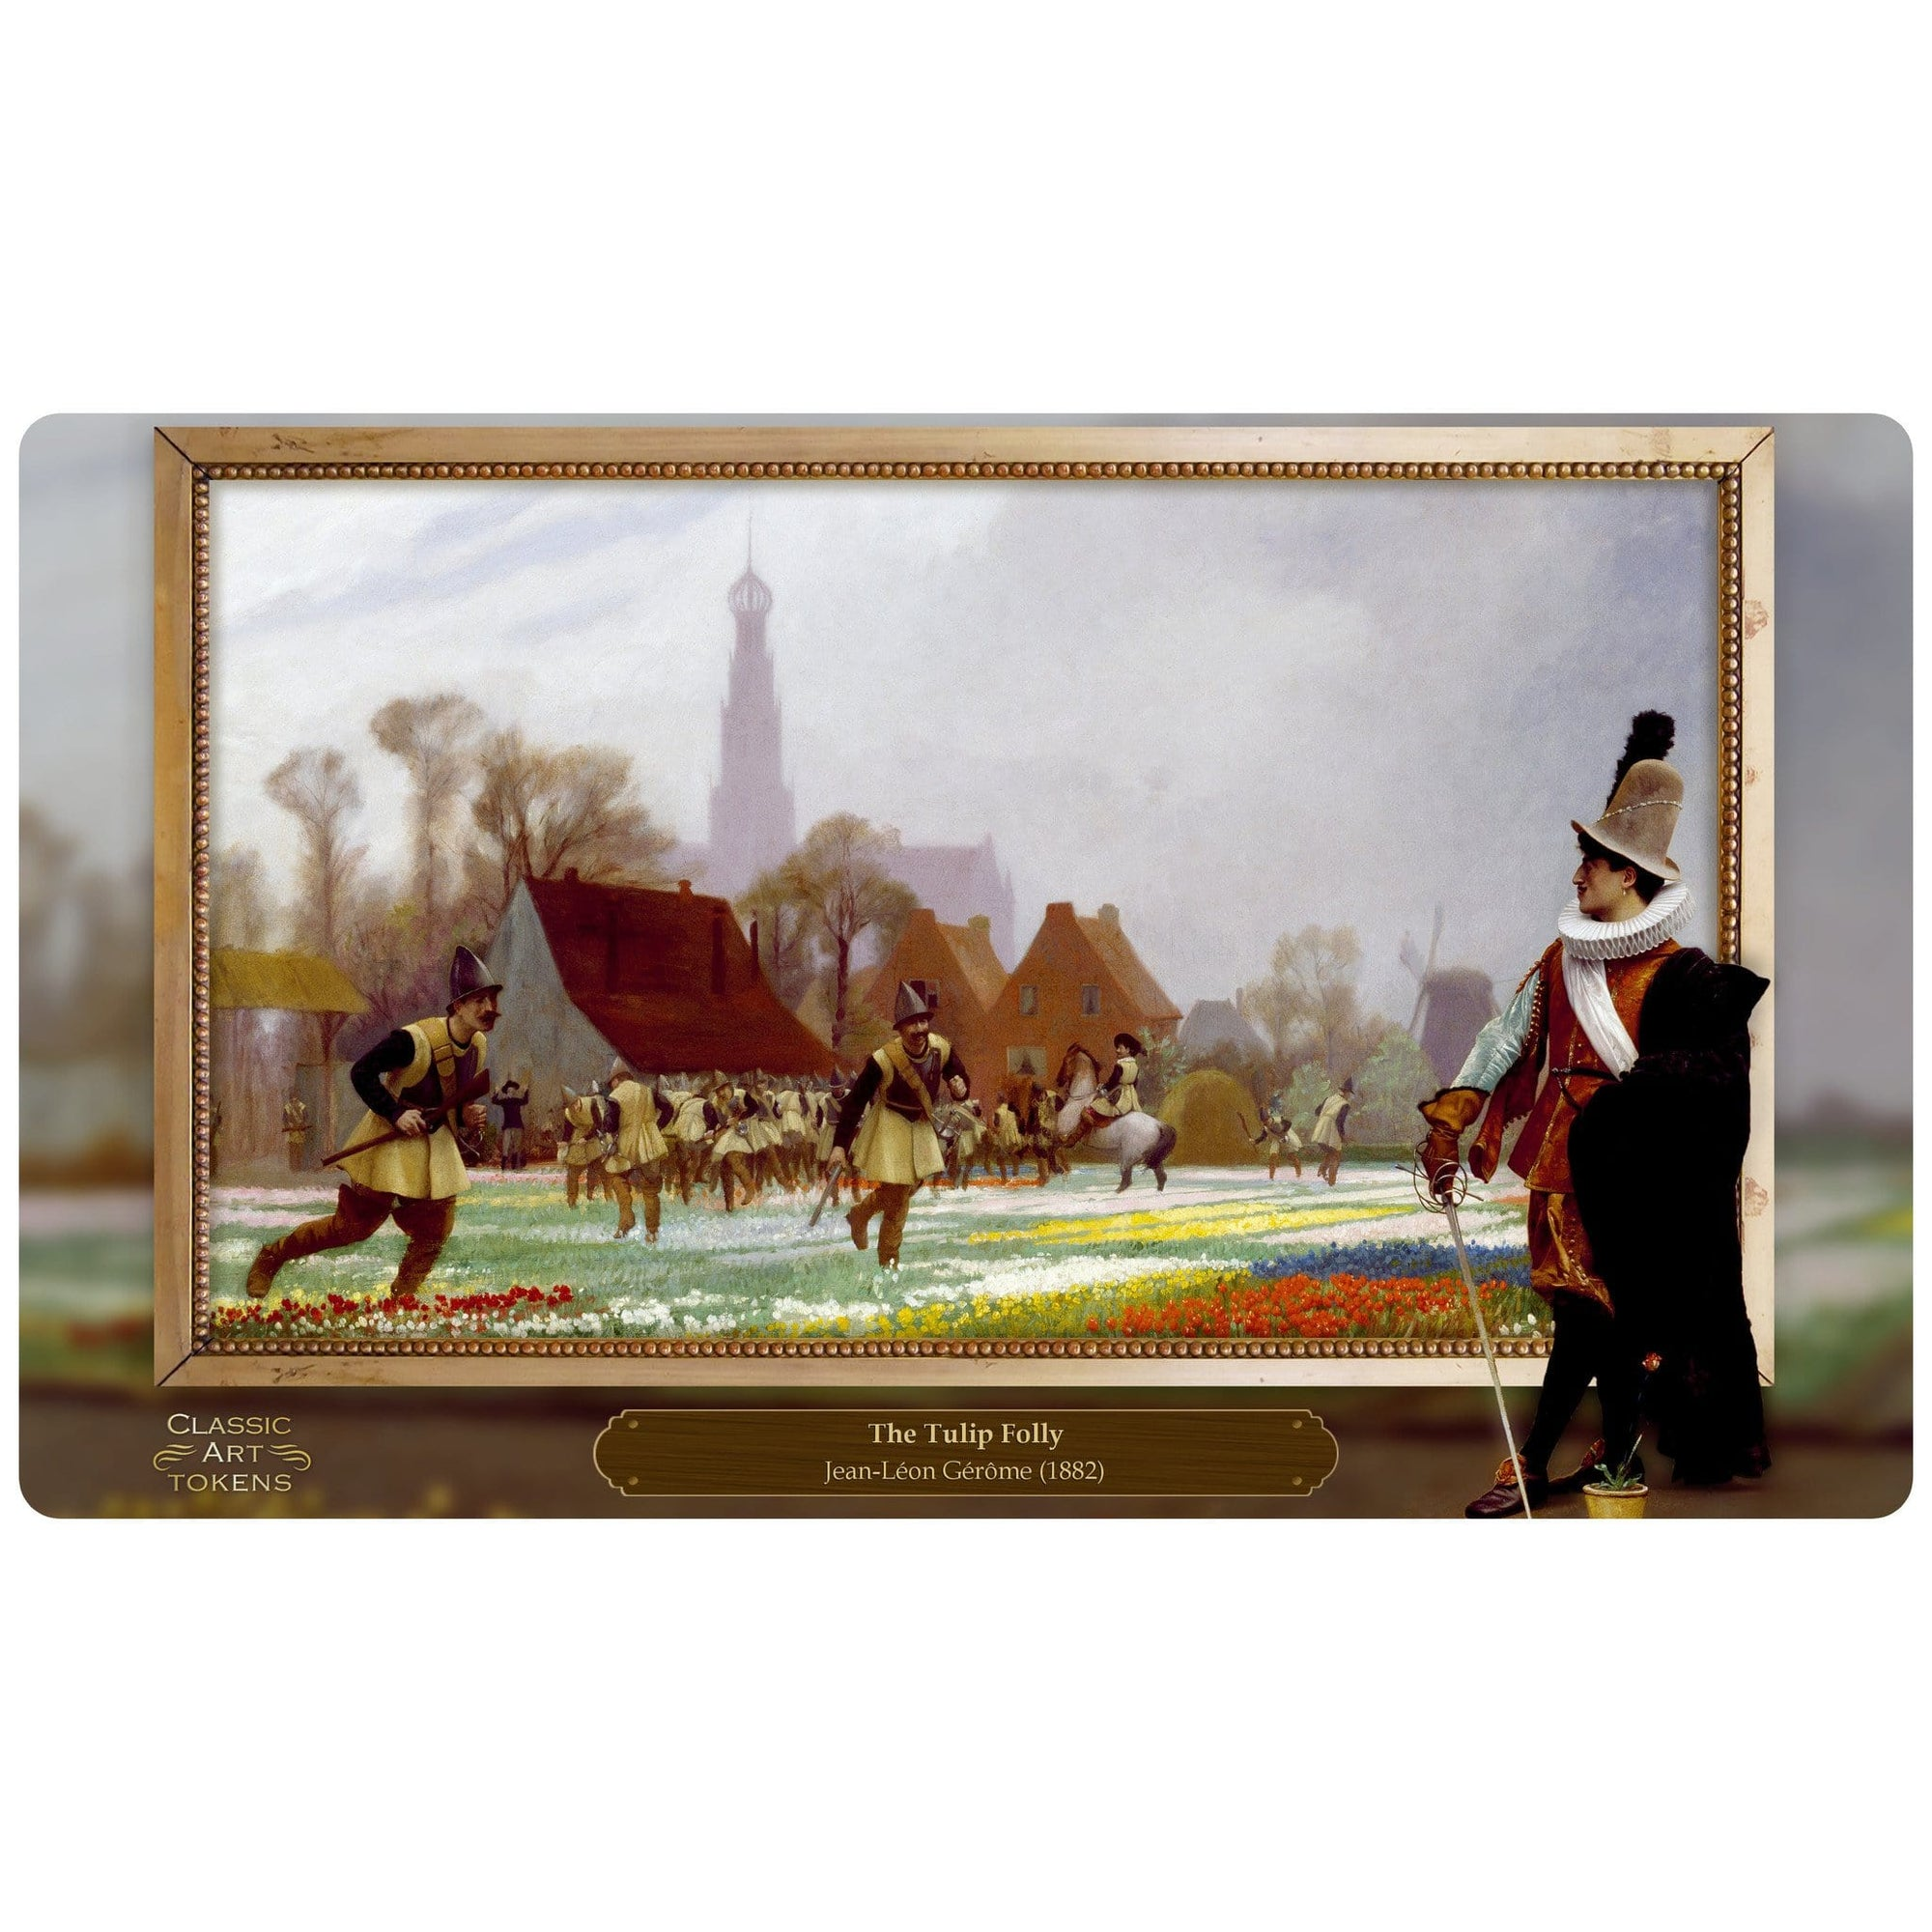 Soldier Playmat by Jean-Léon Gérôme - Playmat - Original Magic Art - Accessories for Magic the Gathering and other card games